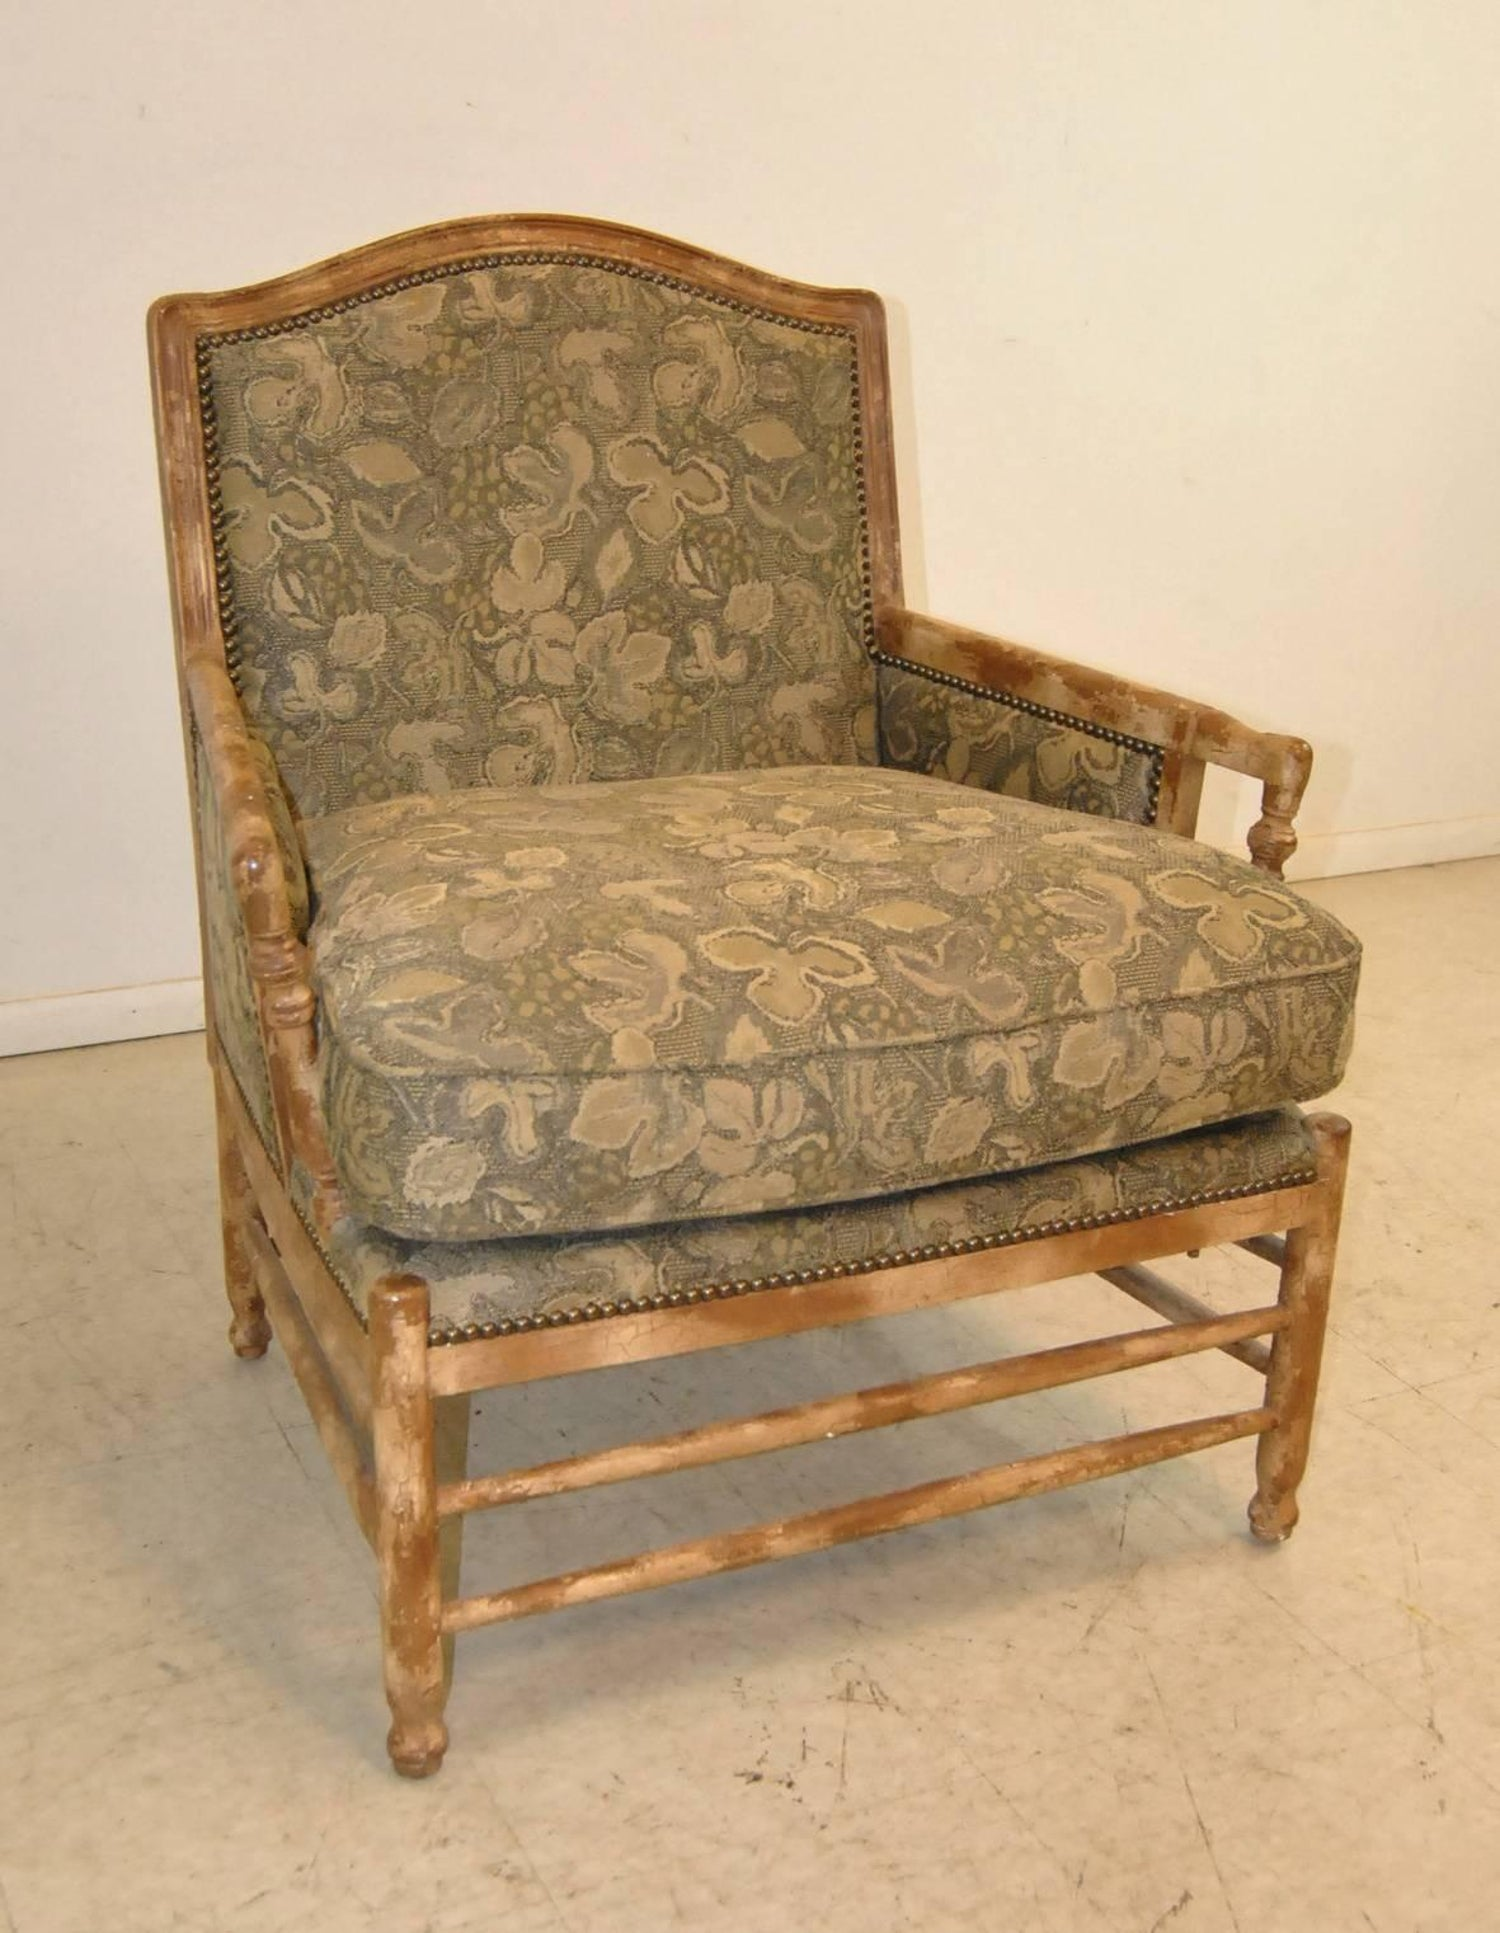 French country bergere style armchair by isenhour furniture for sale at 1stdibs